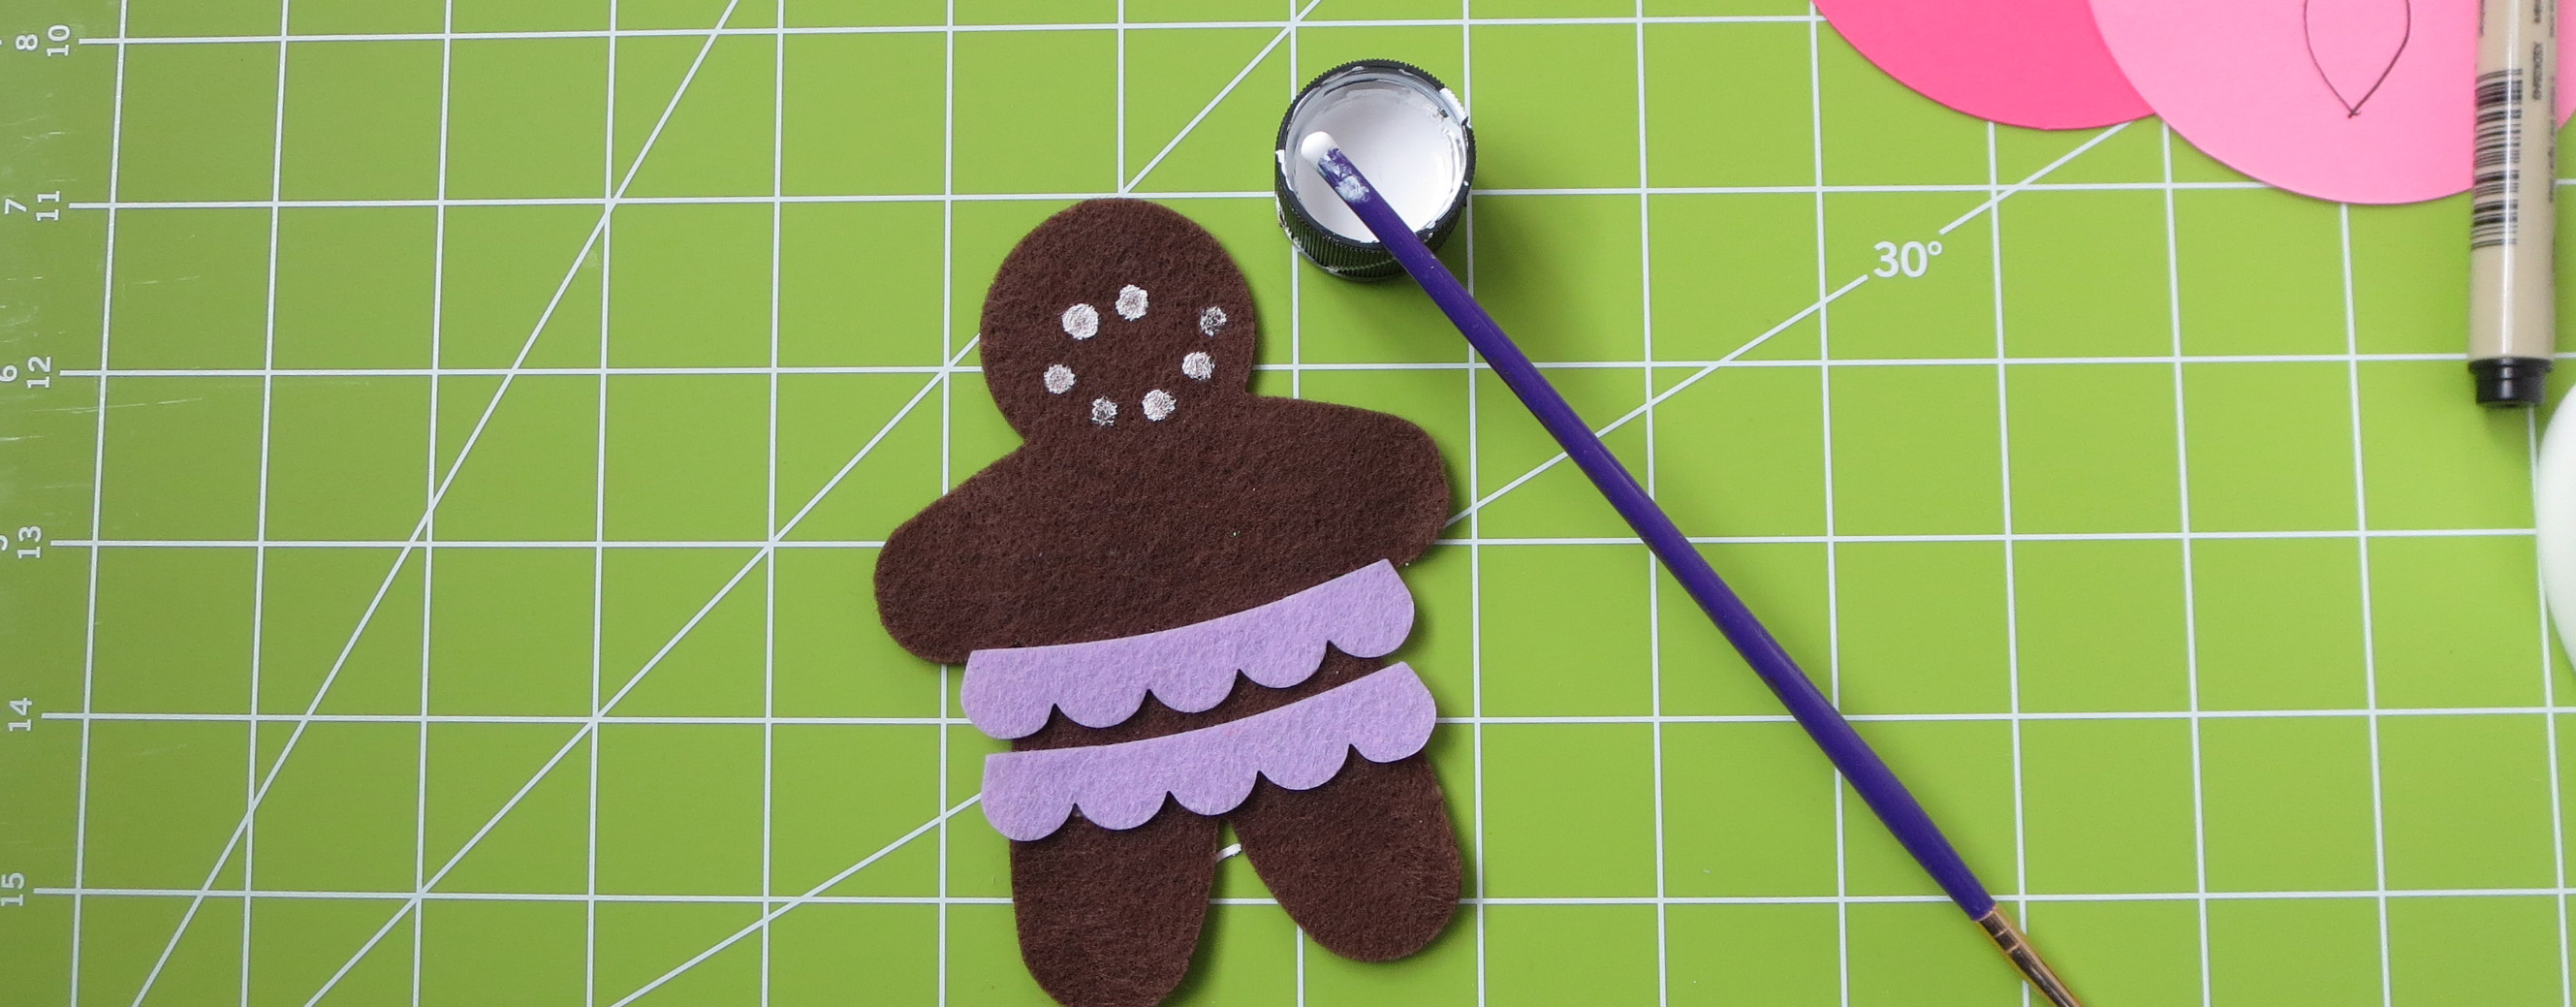 brown felt gingerbread man with lavender scalloped skirt with white paint circles for eyes and a smile next to paintbrush